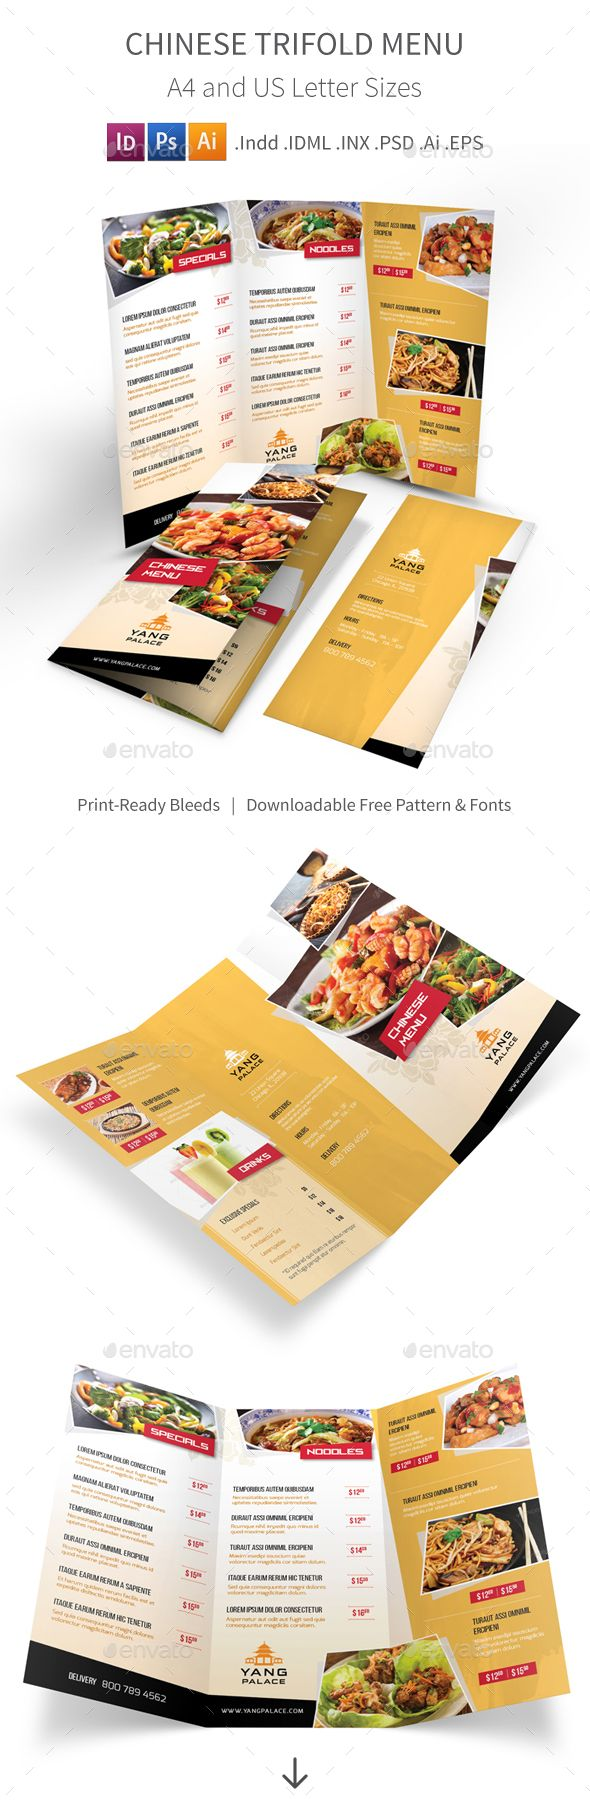 Chinese Restaurant Trifold Menu Template. Download here: http://graphicriver.net/item/chinese-restaurant-trifold-menu/16016489?ref=ksioks